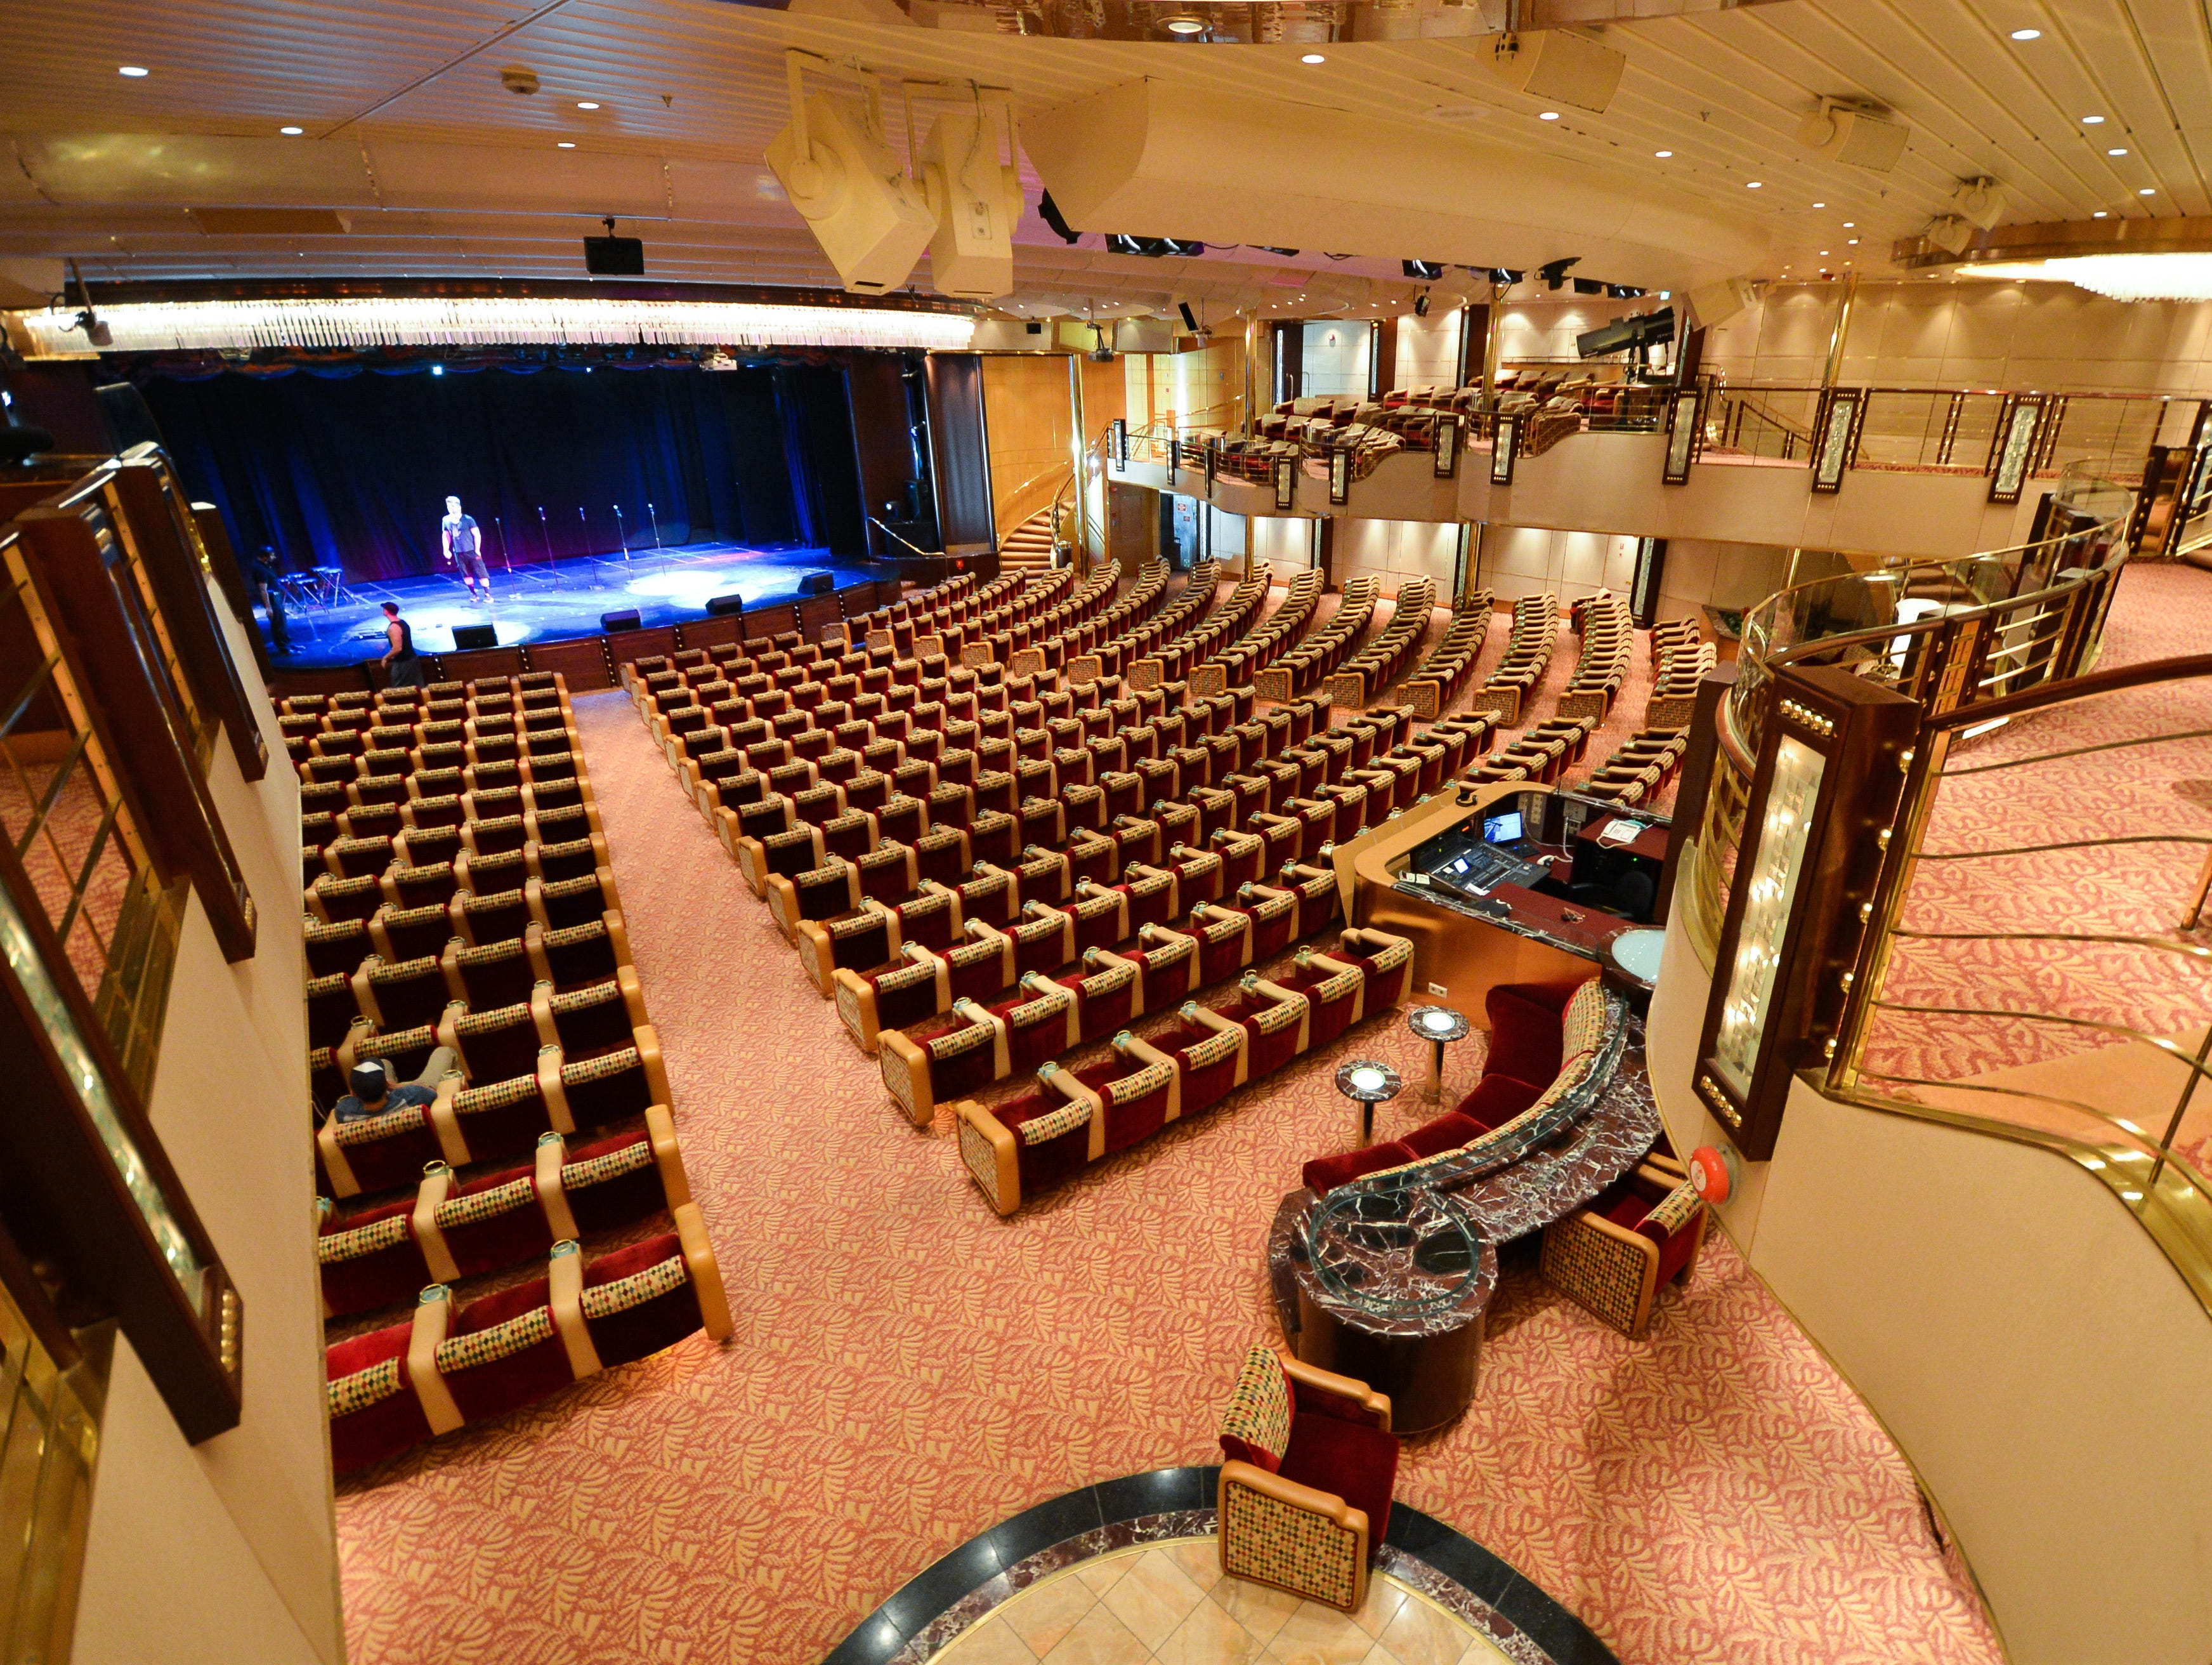 The largest entertainment venue on the ship is the 870-seat Palladium Theater, where Broadway-style shows, comedy acts, illusionists and other entertainment is offered nightly.